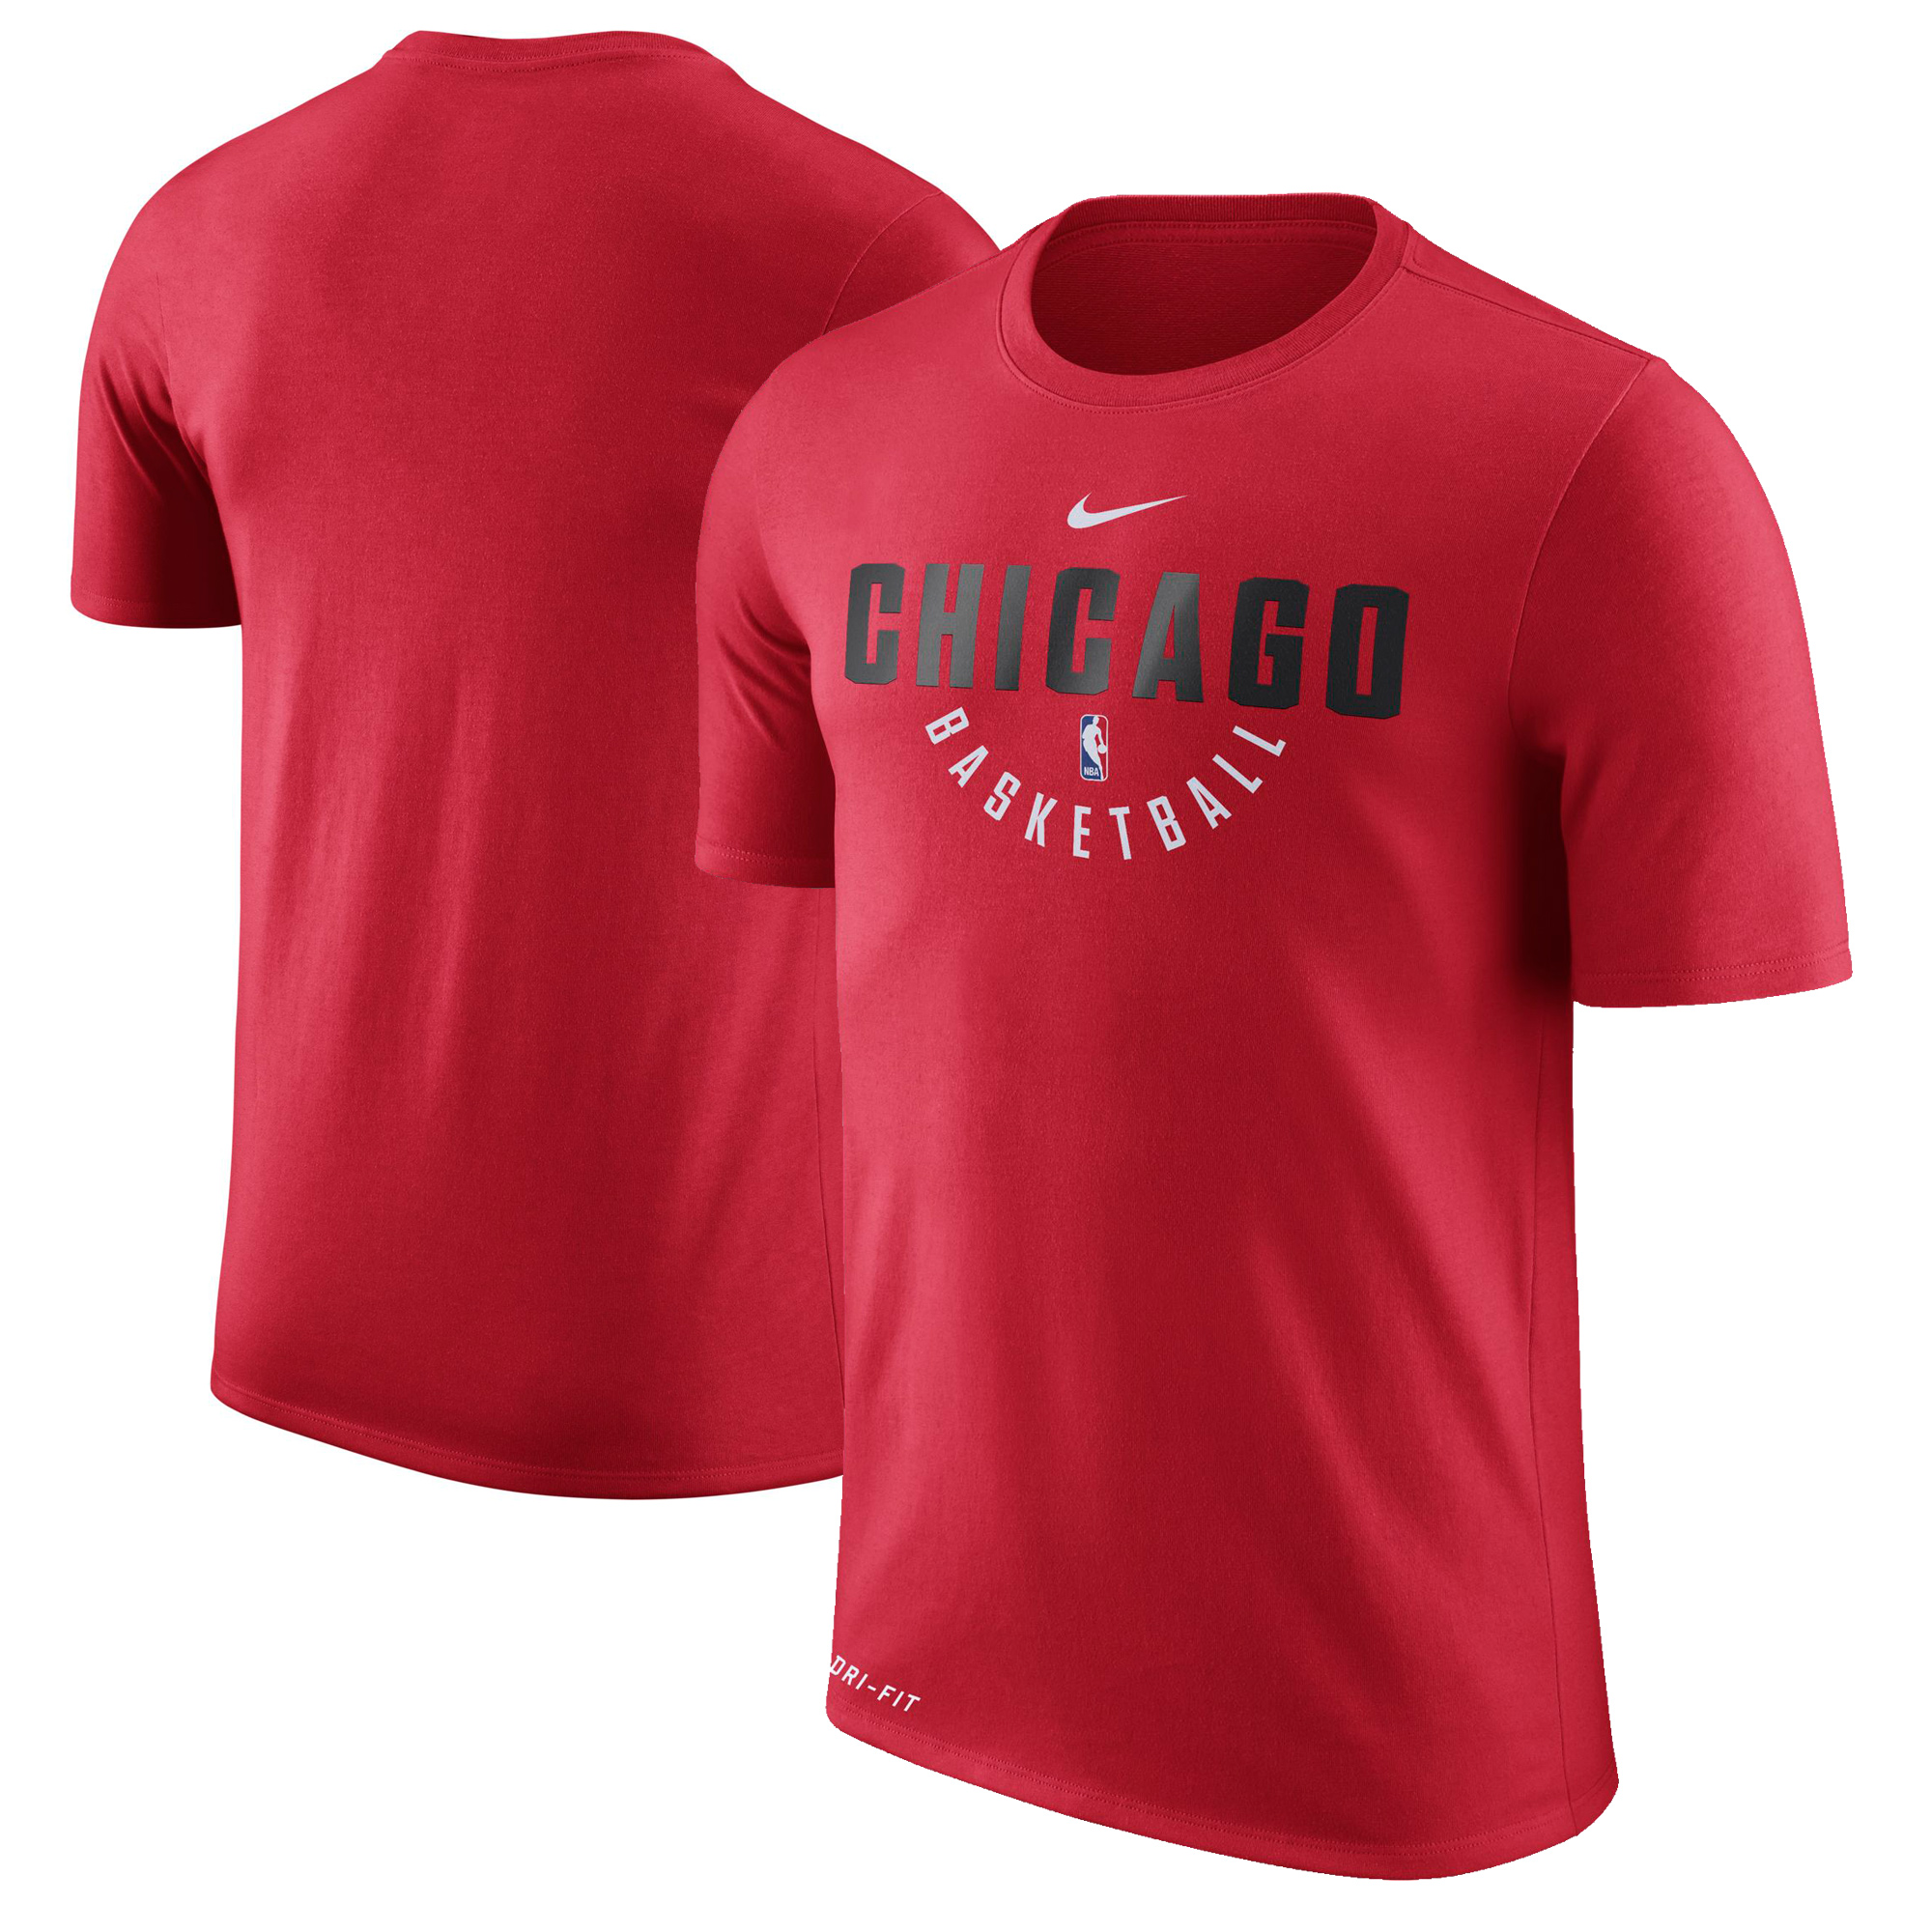 Chicago Bulls Nike Practice Performance T-Shirt - Red